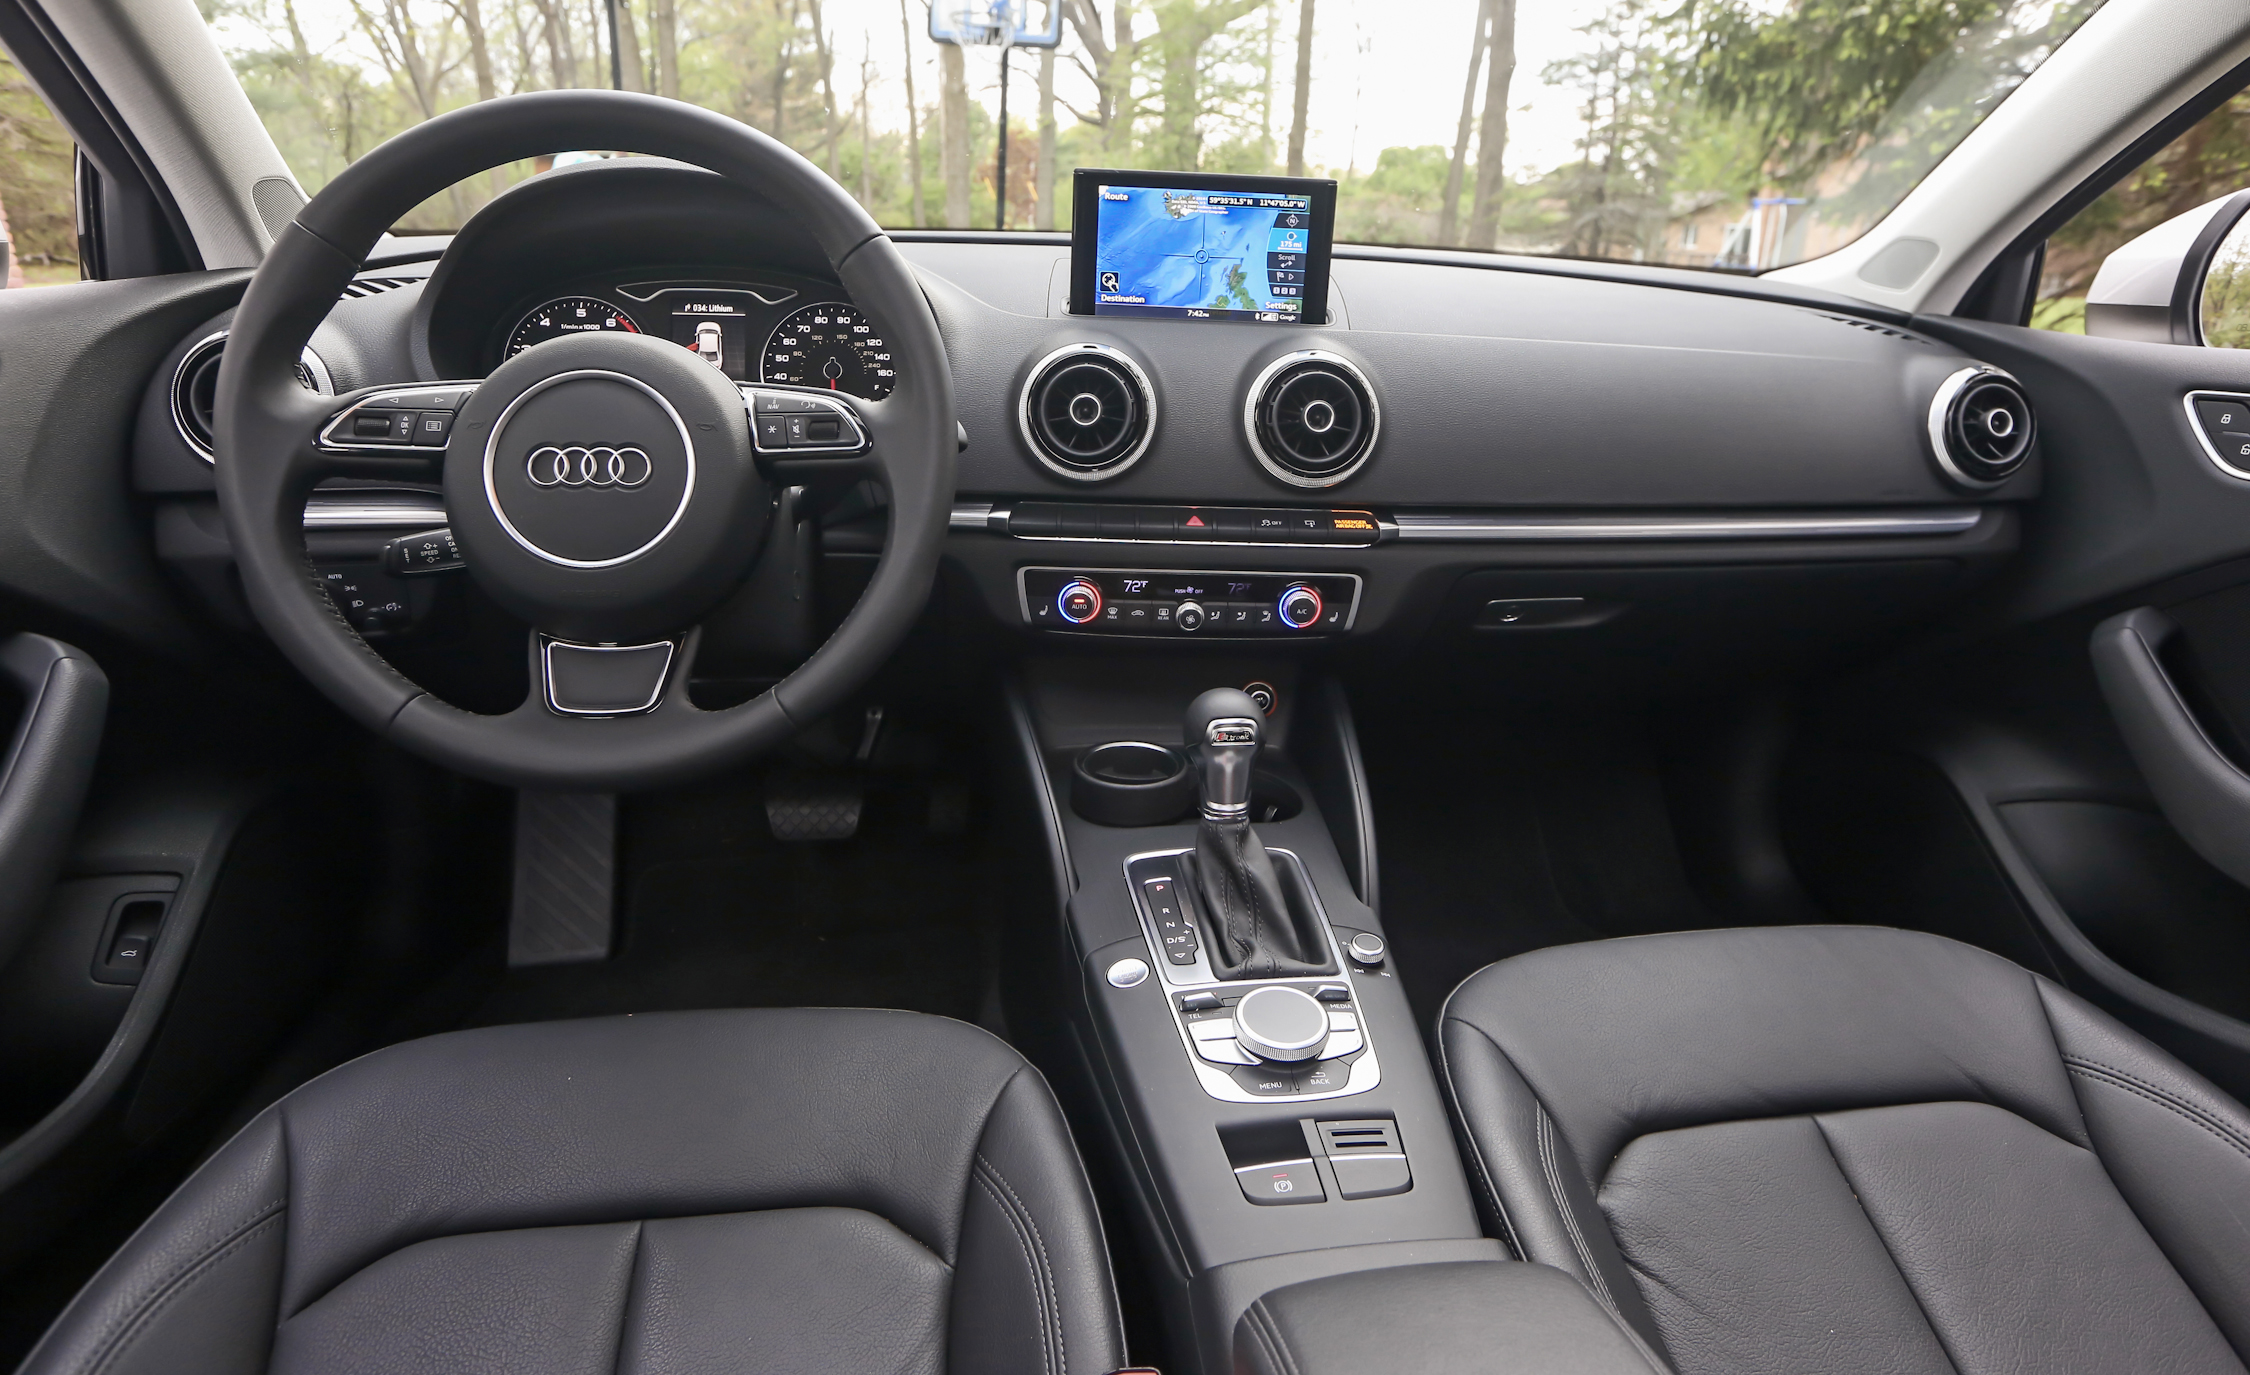 2015 Audi A3 1.8T Interior Dashboard (Photo 47 of 50)